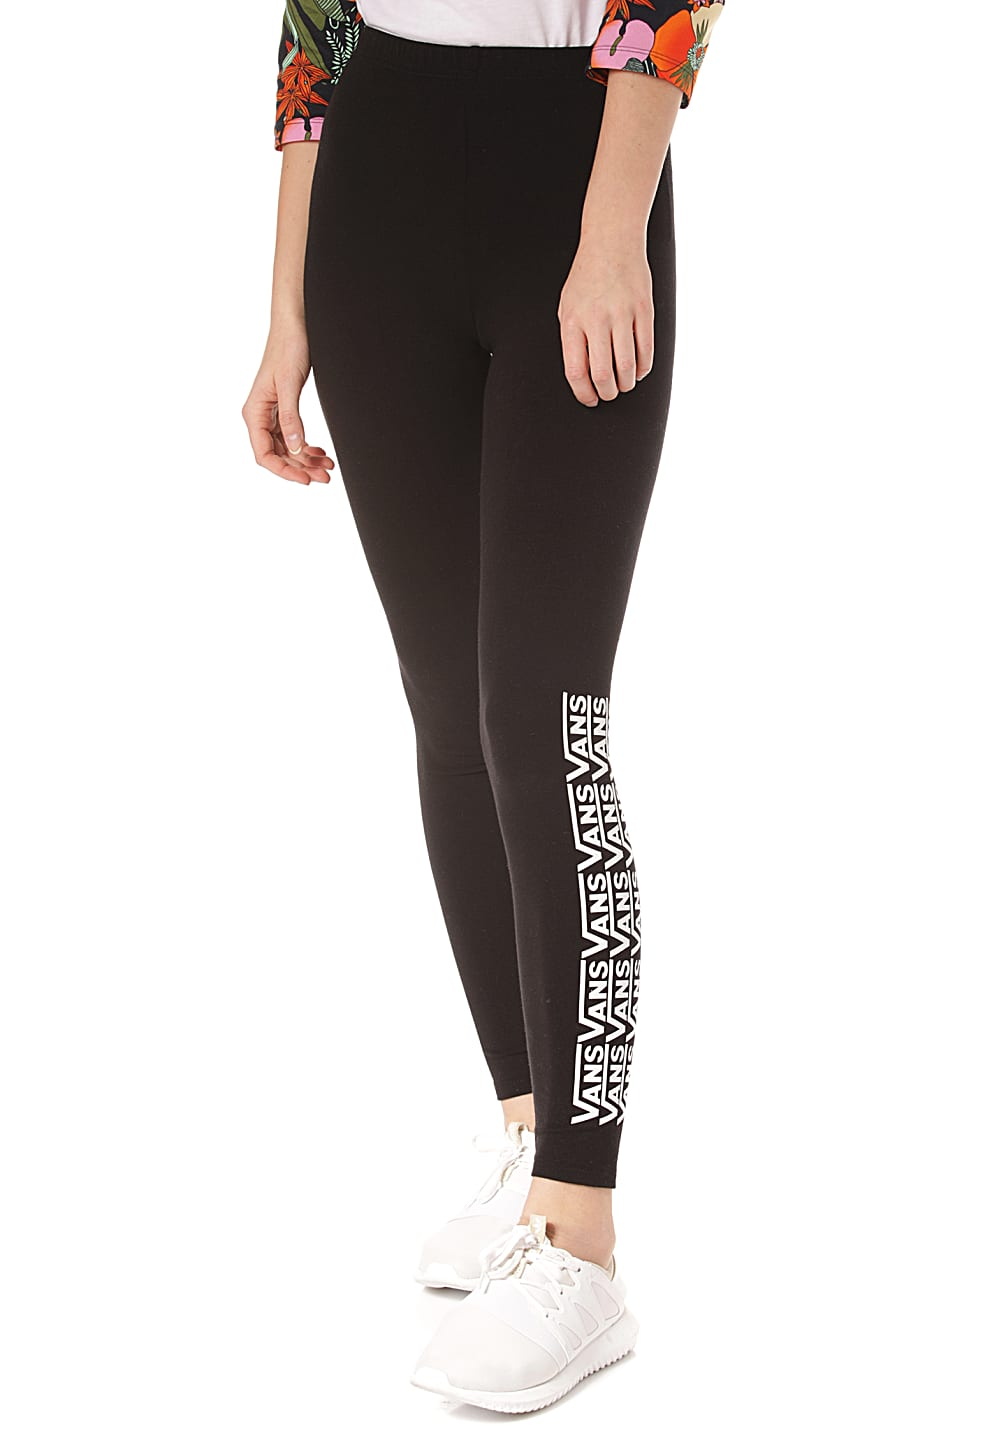 Hosen - VANS Chalkboard Fair Well Leggings für Damen Schwarz  - Onlineshop Planet Sports